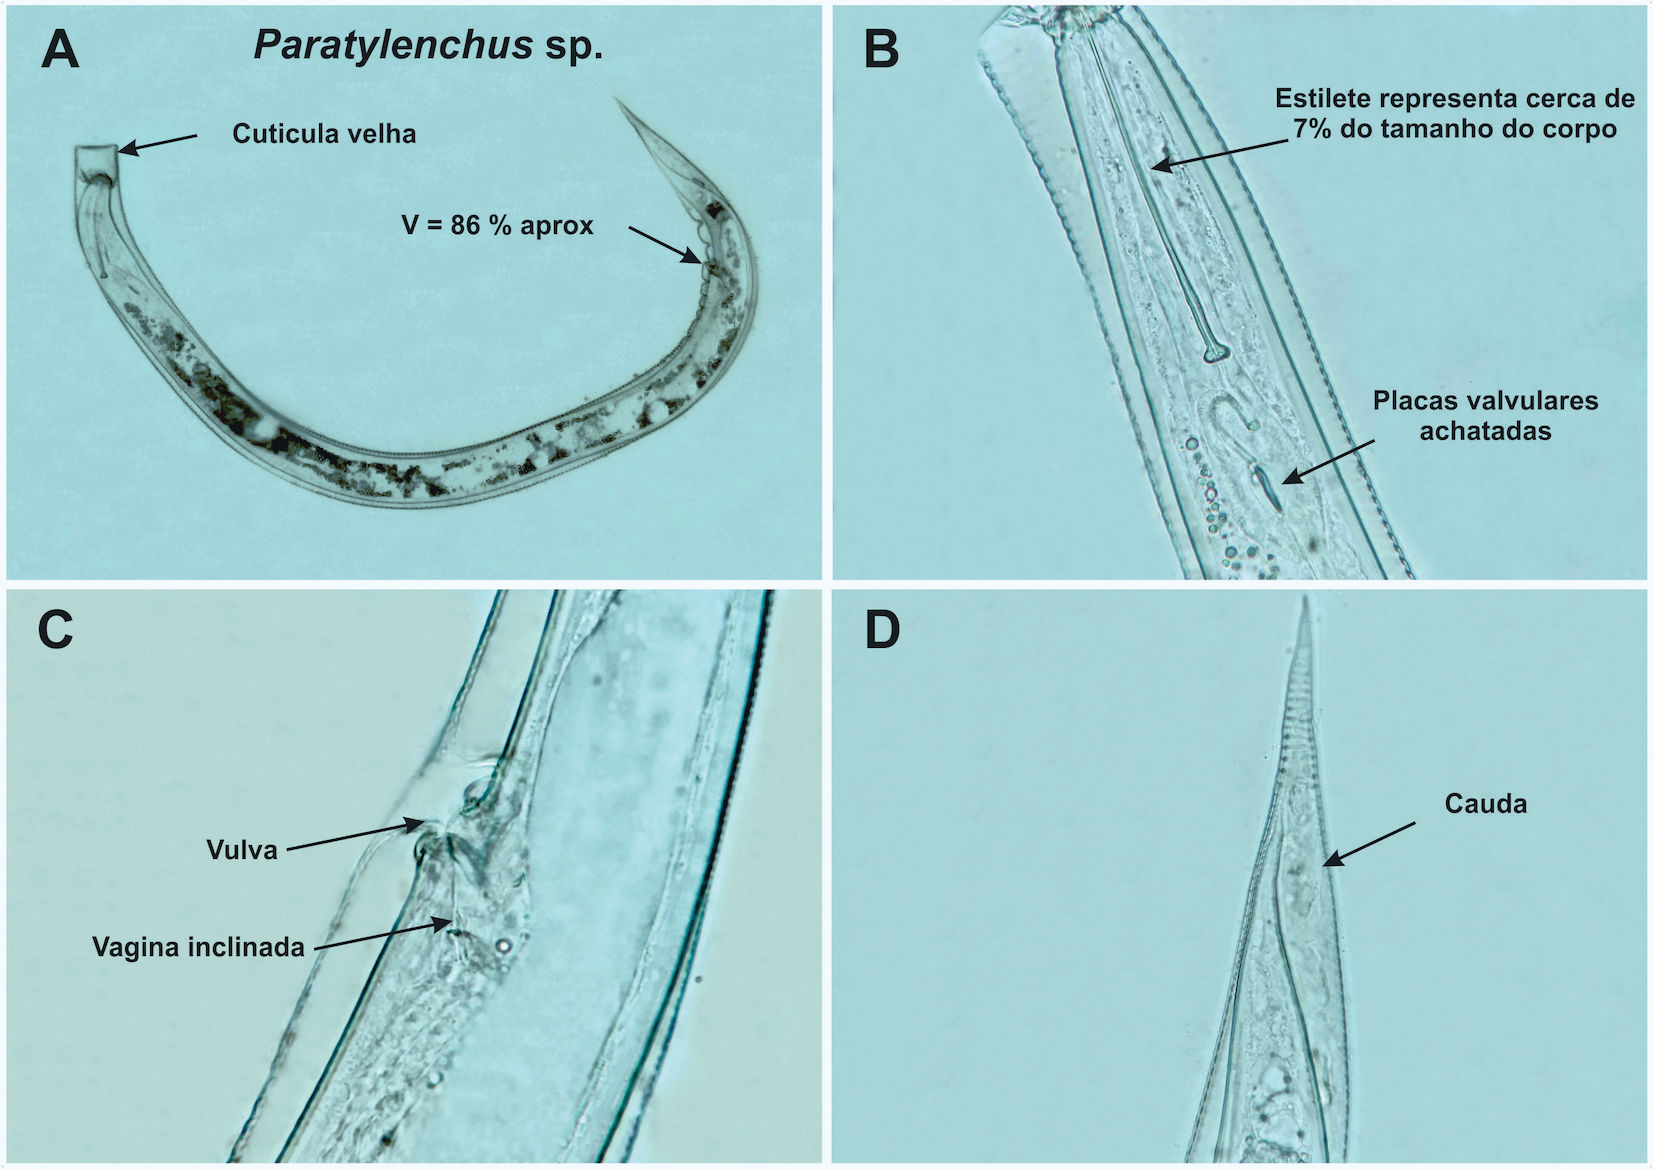 Paratylenchus sp. in peach rhizosphere